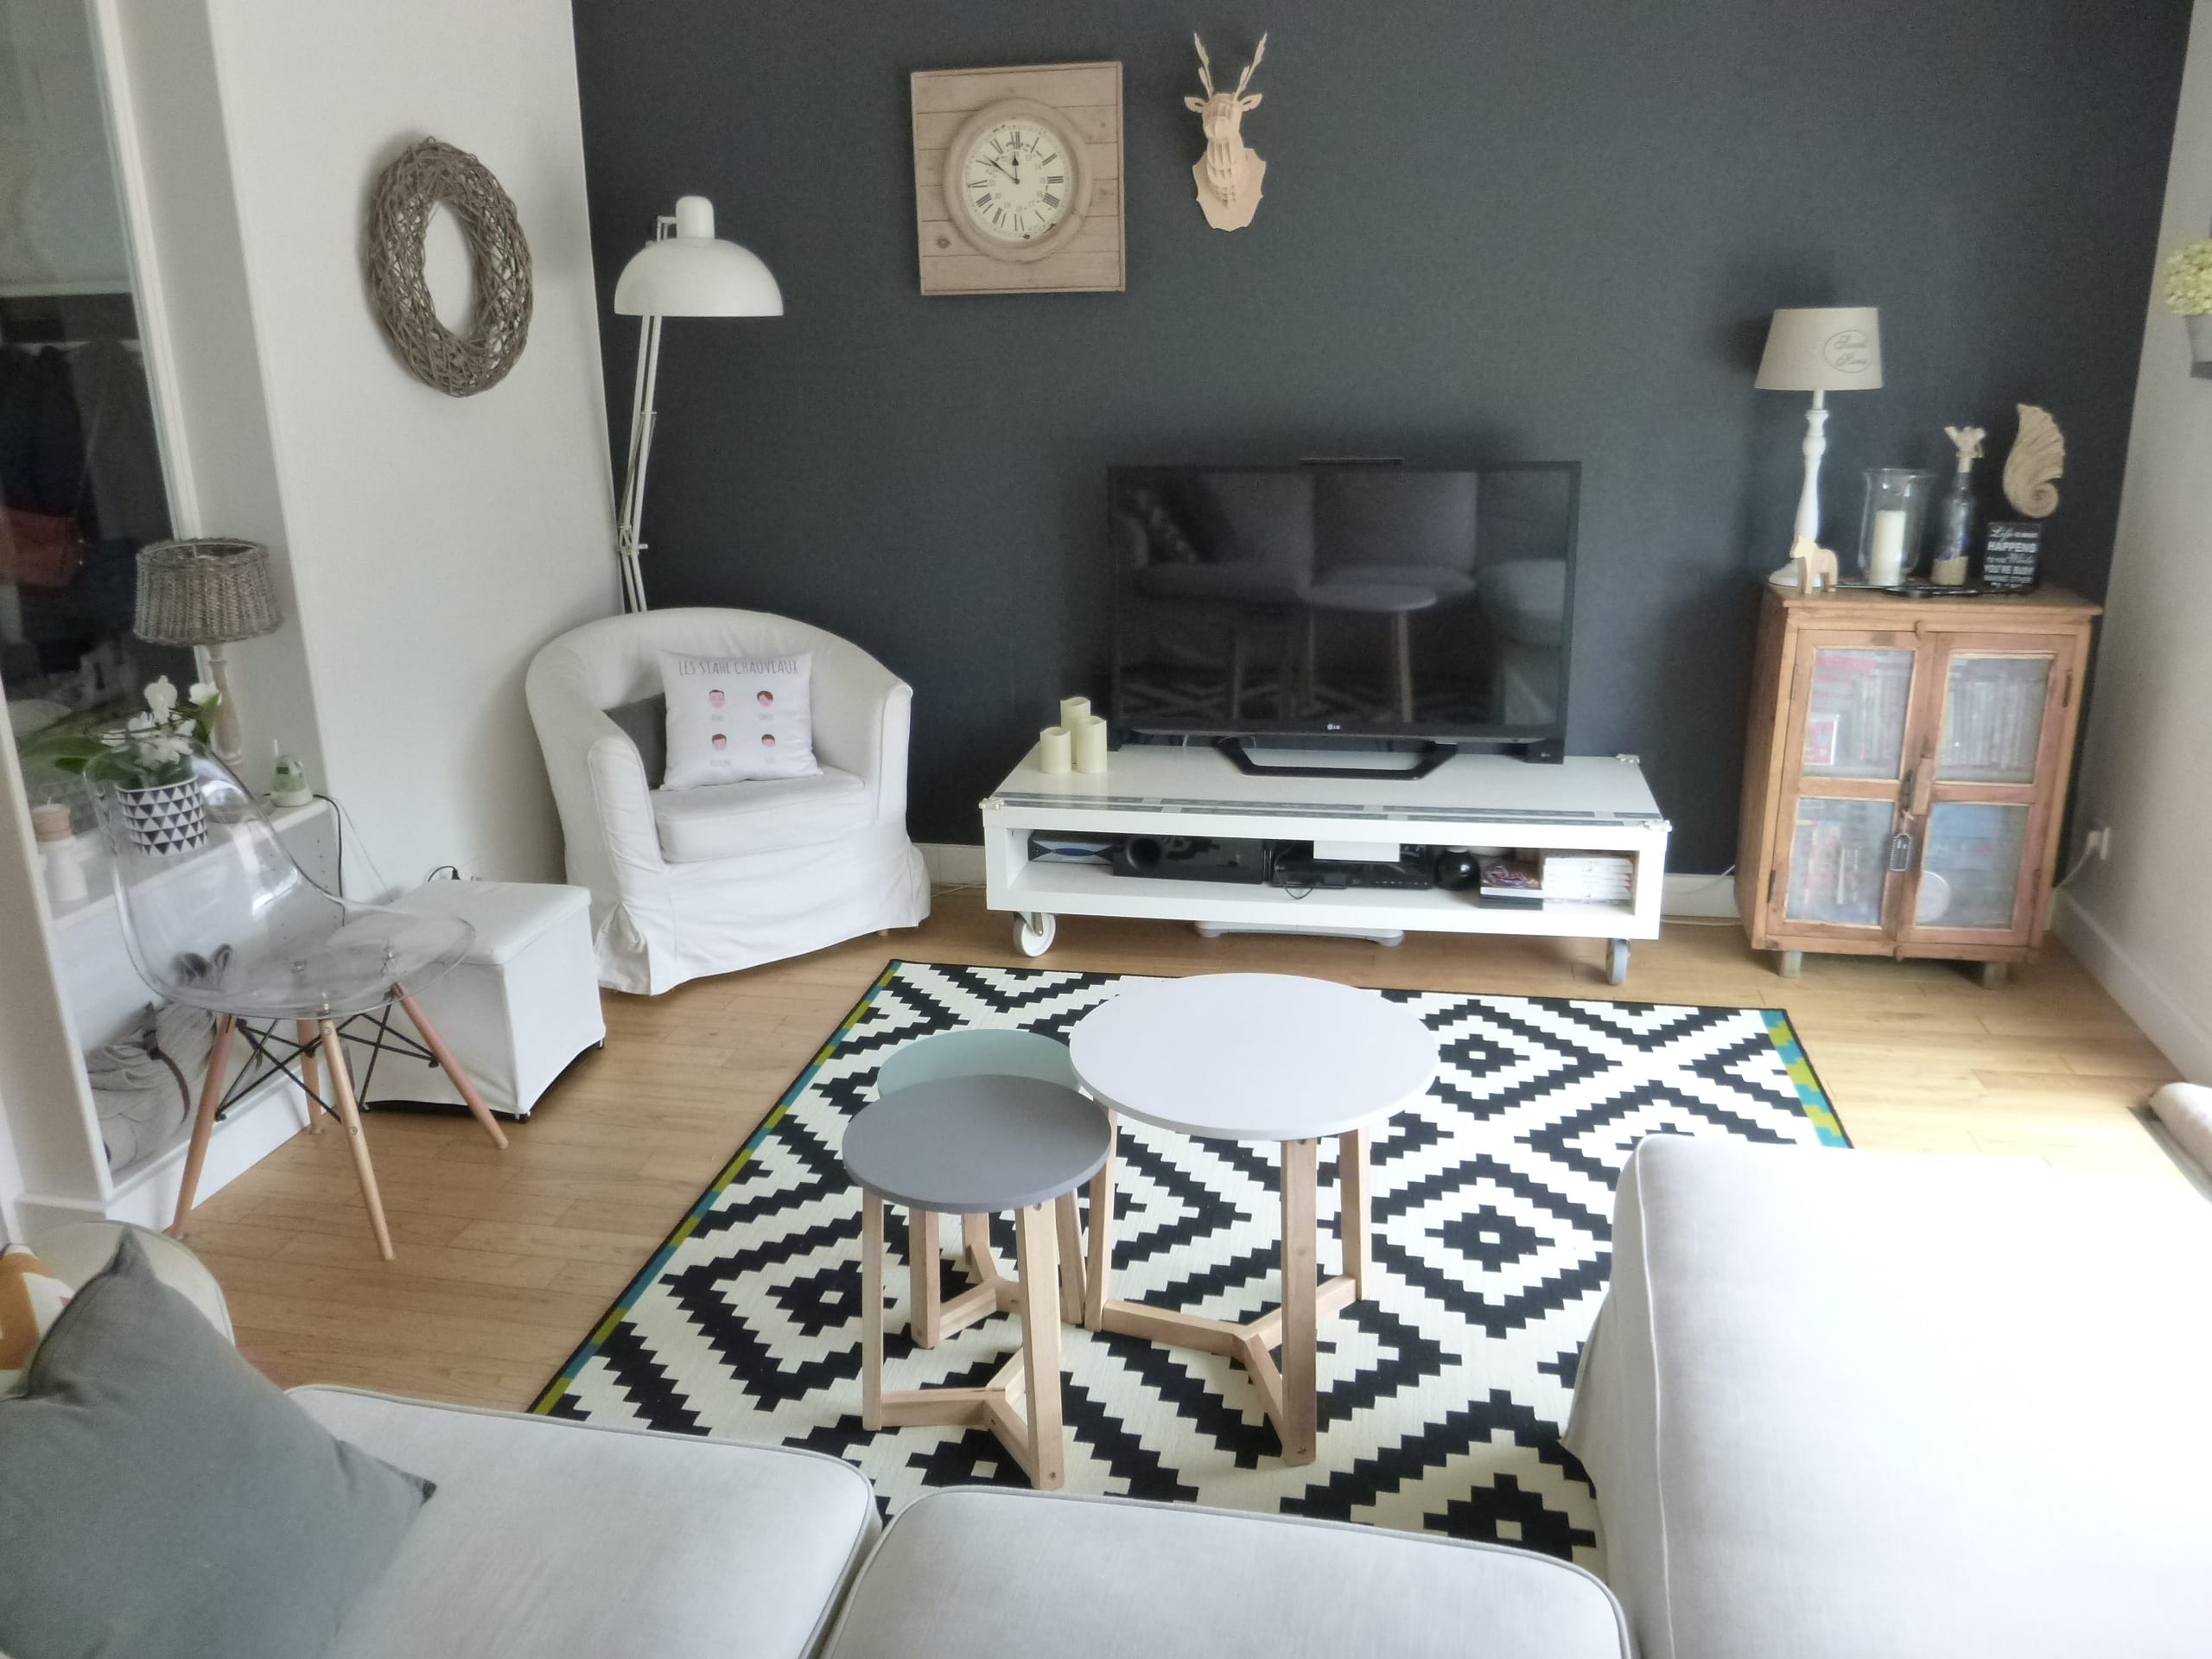 Apr s un salon scandinave - Deco scandinave en ligne ...